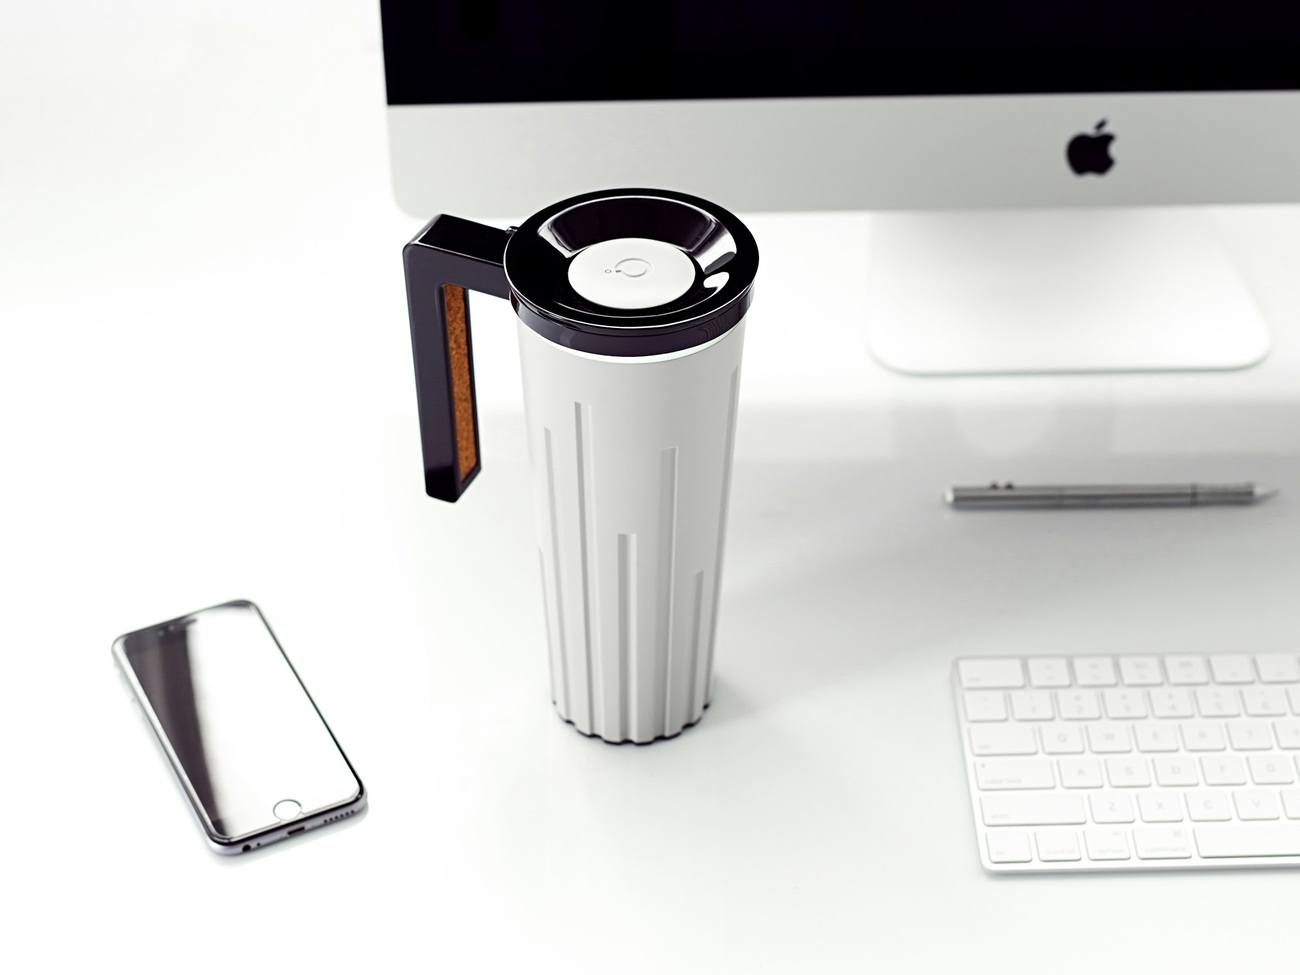 Muggino Self-Powered Smart Mug